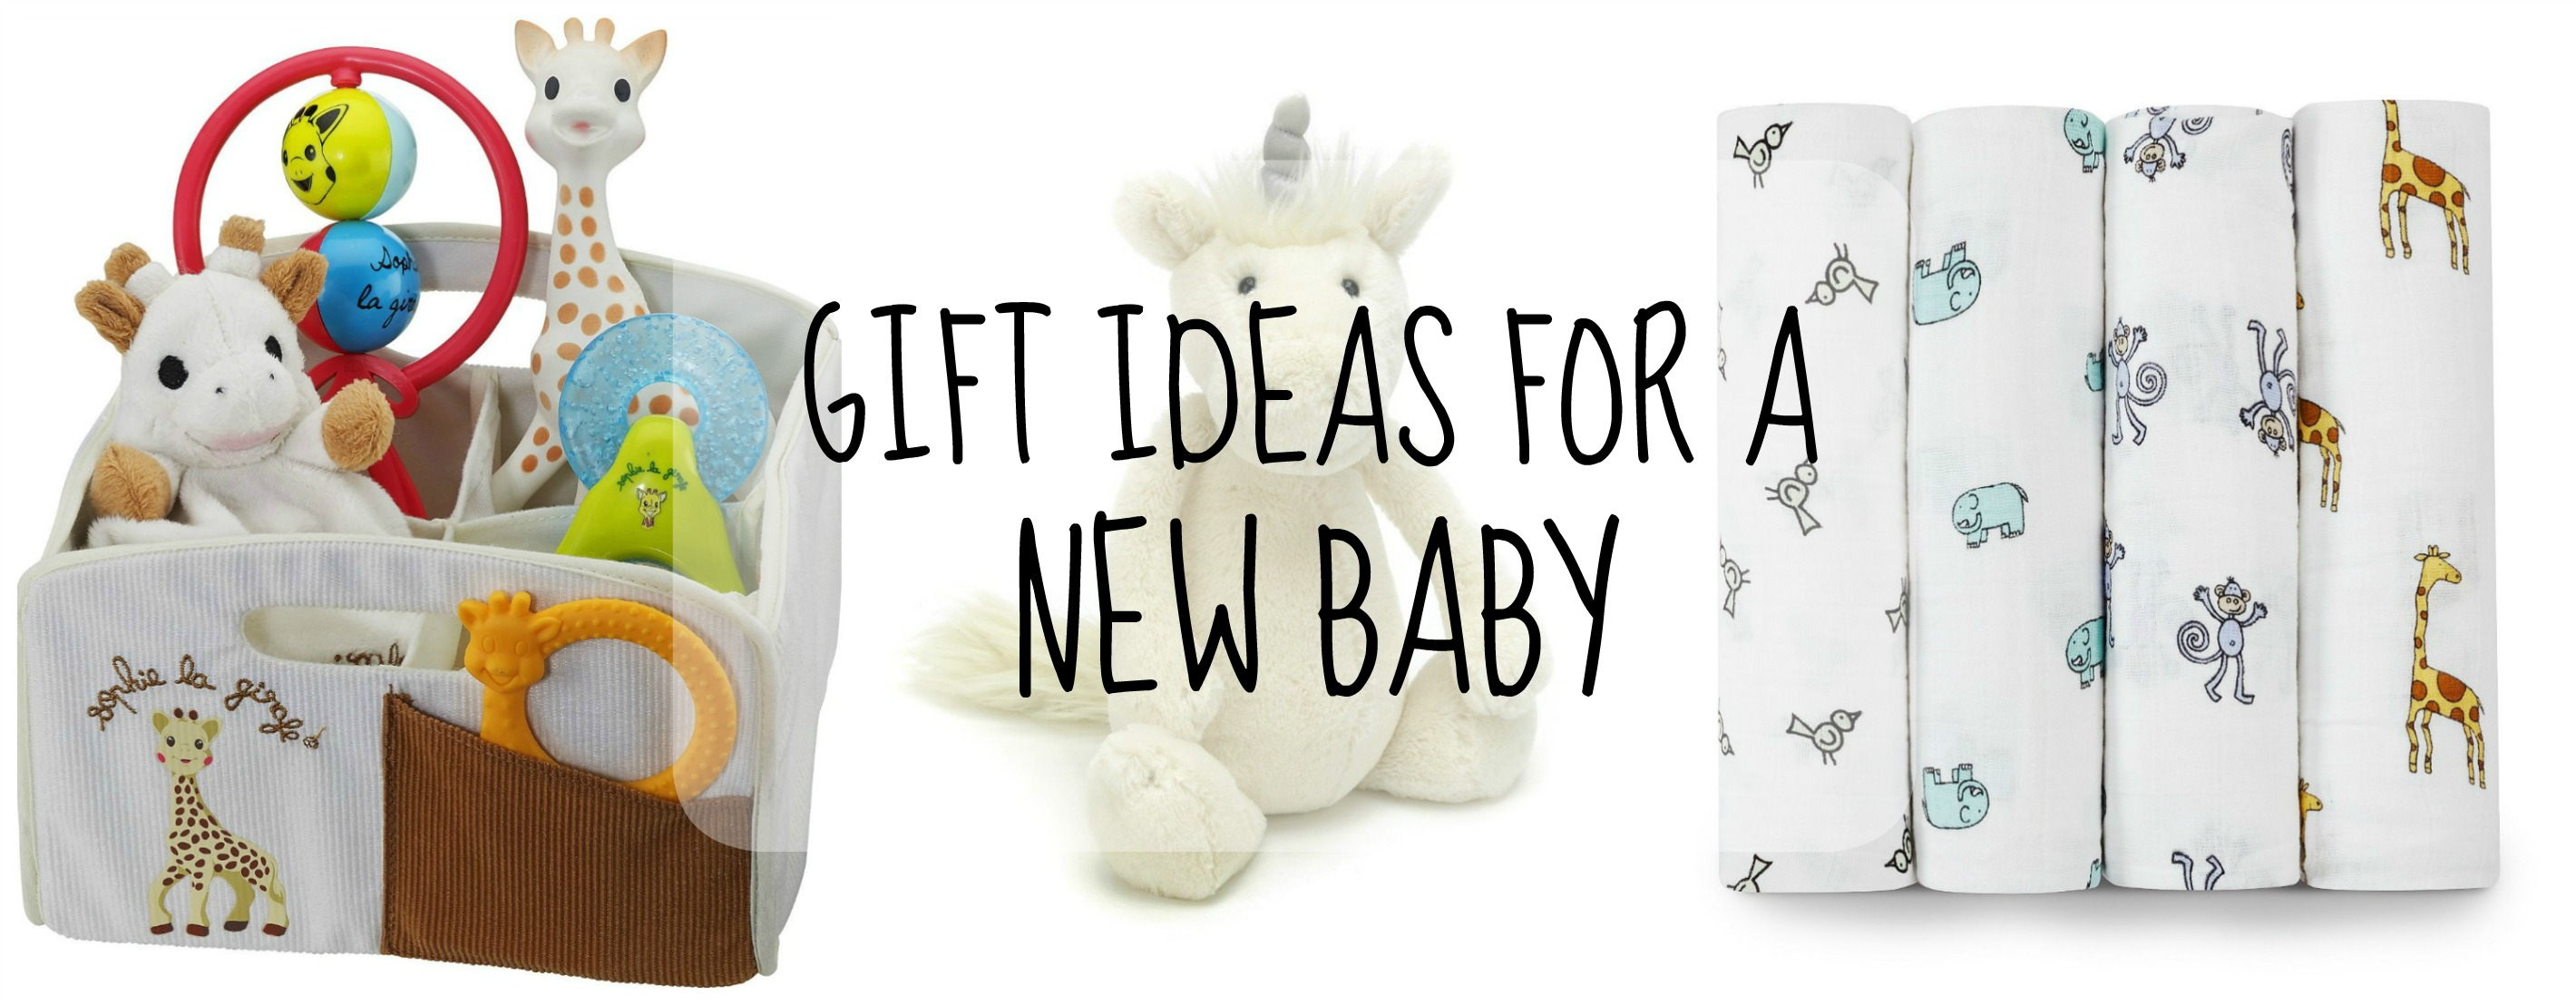 new baby gifts title